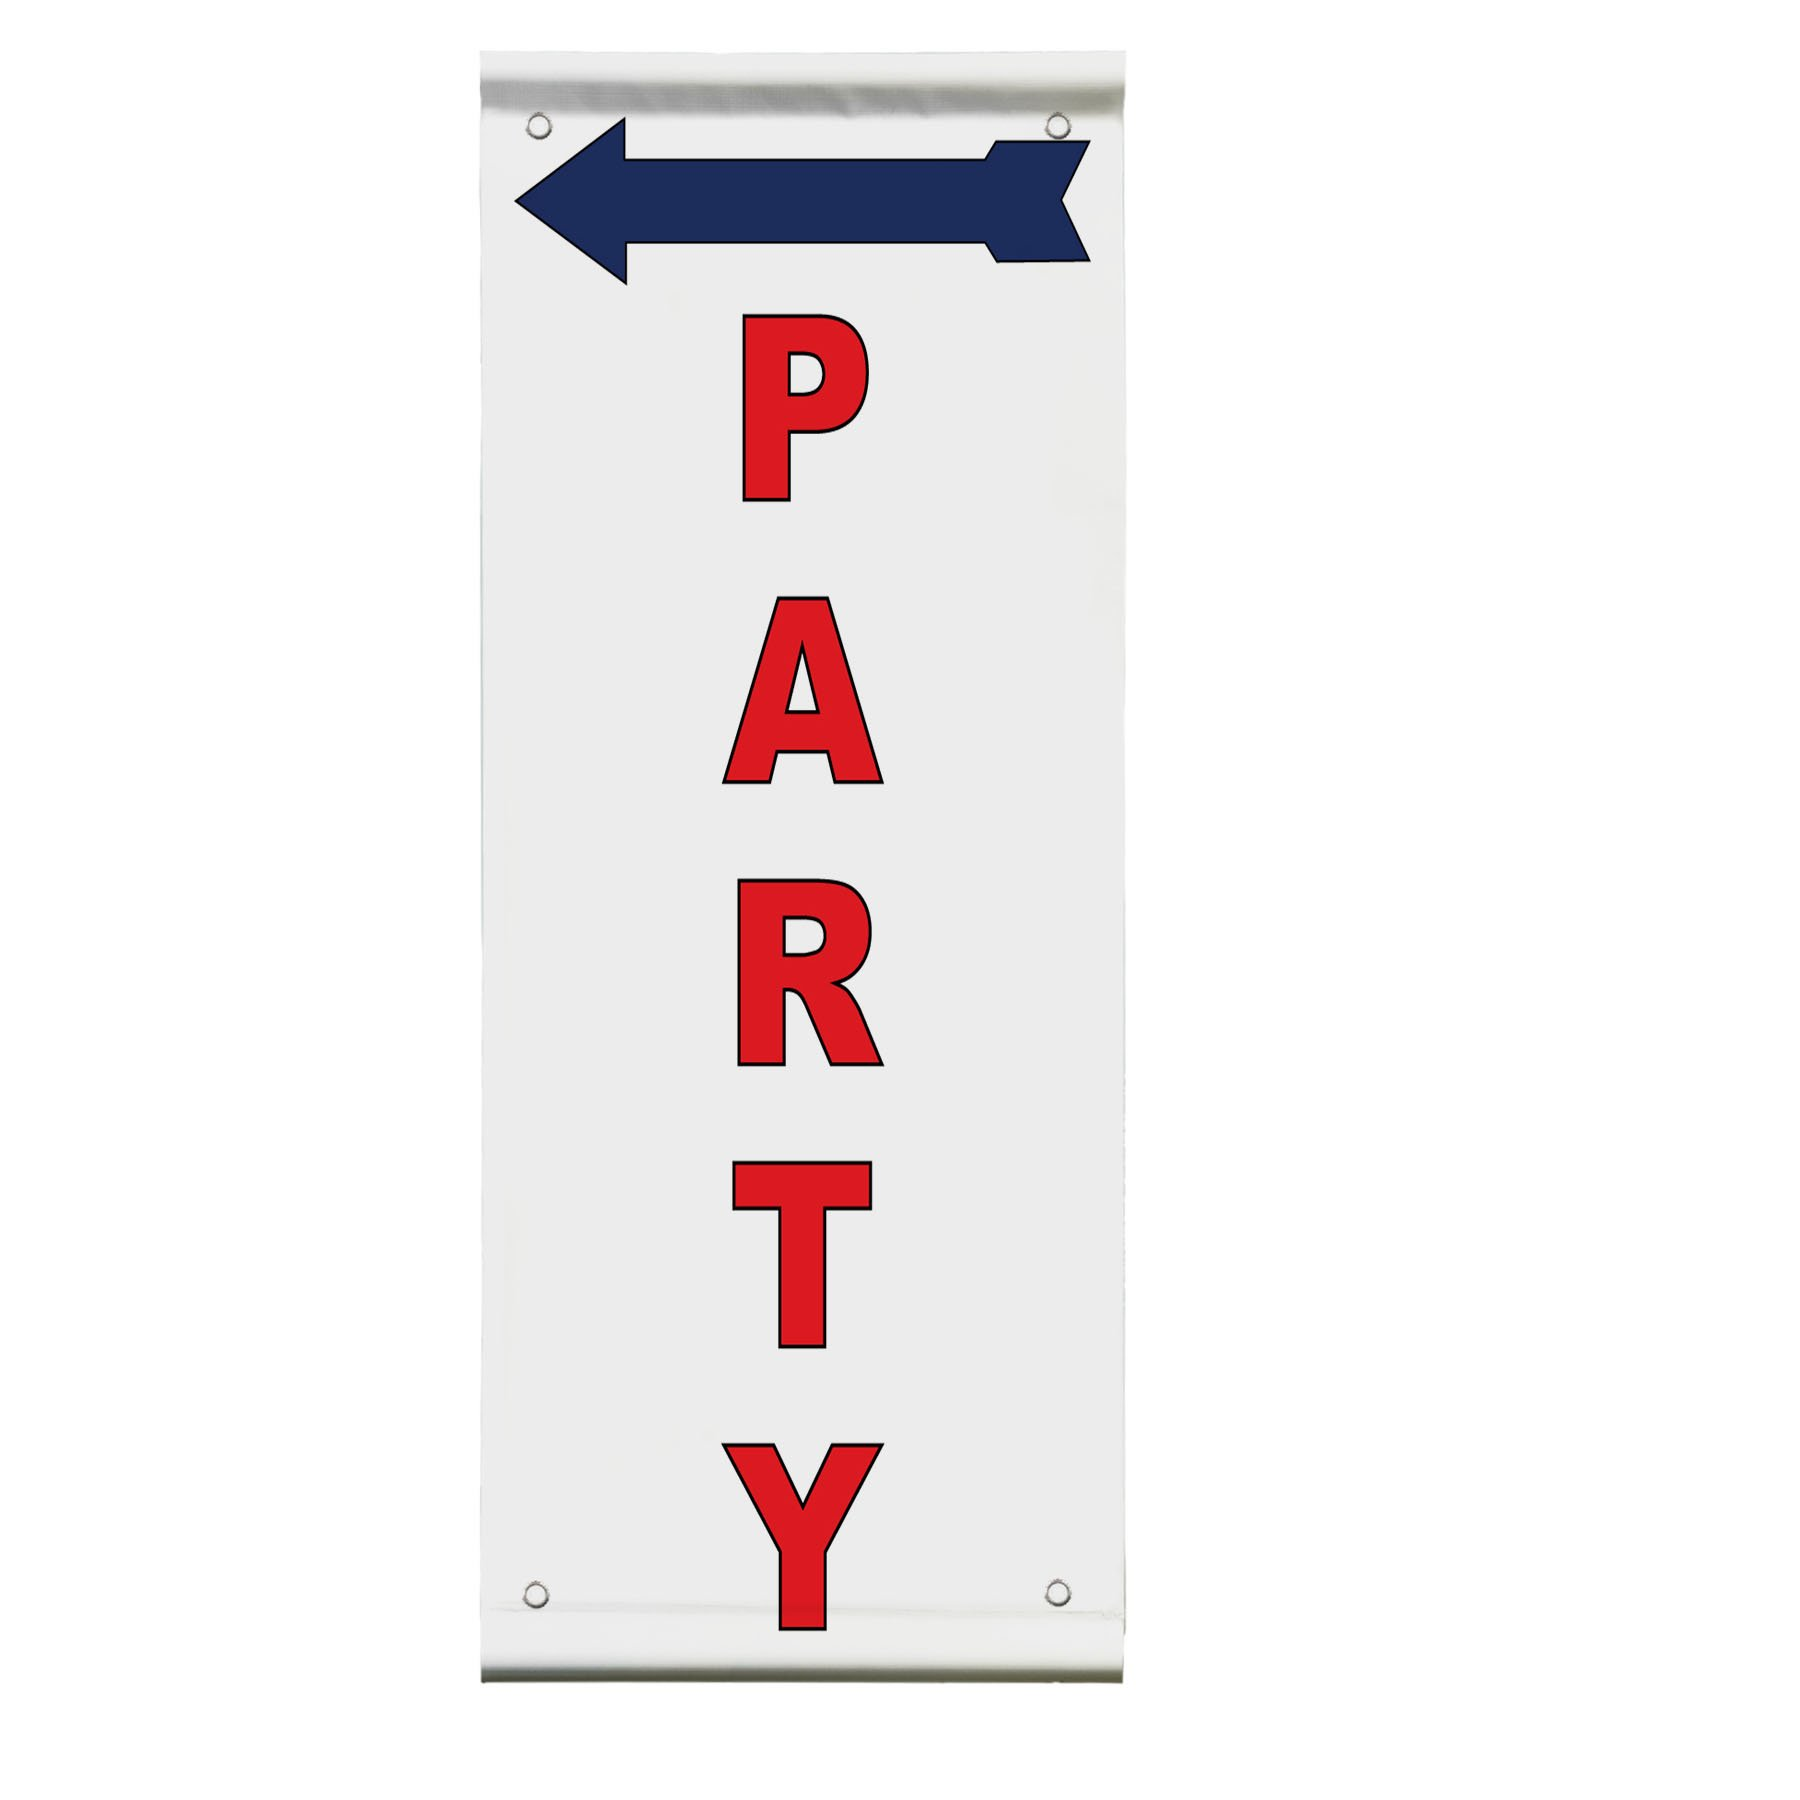 Party Red Arrow Left Double Sided Vertical Pole Banner Sign 36 in x 72 in w/ Wall Bracket by Fastasticdeals